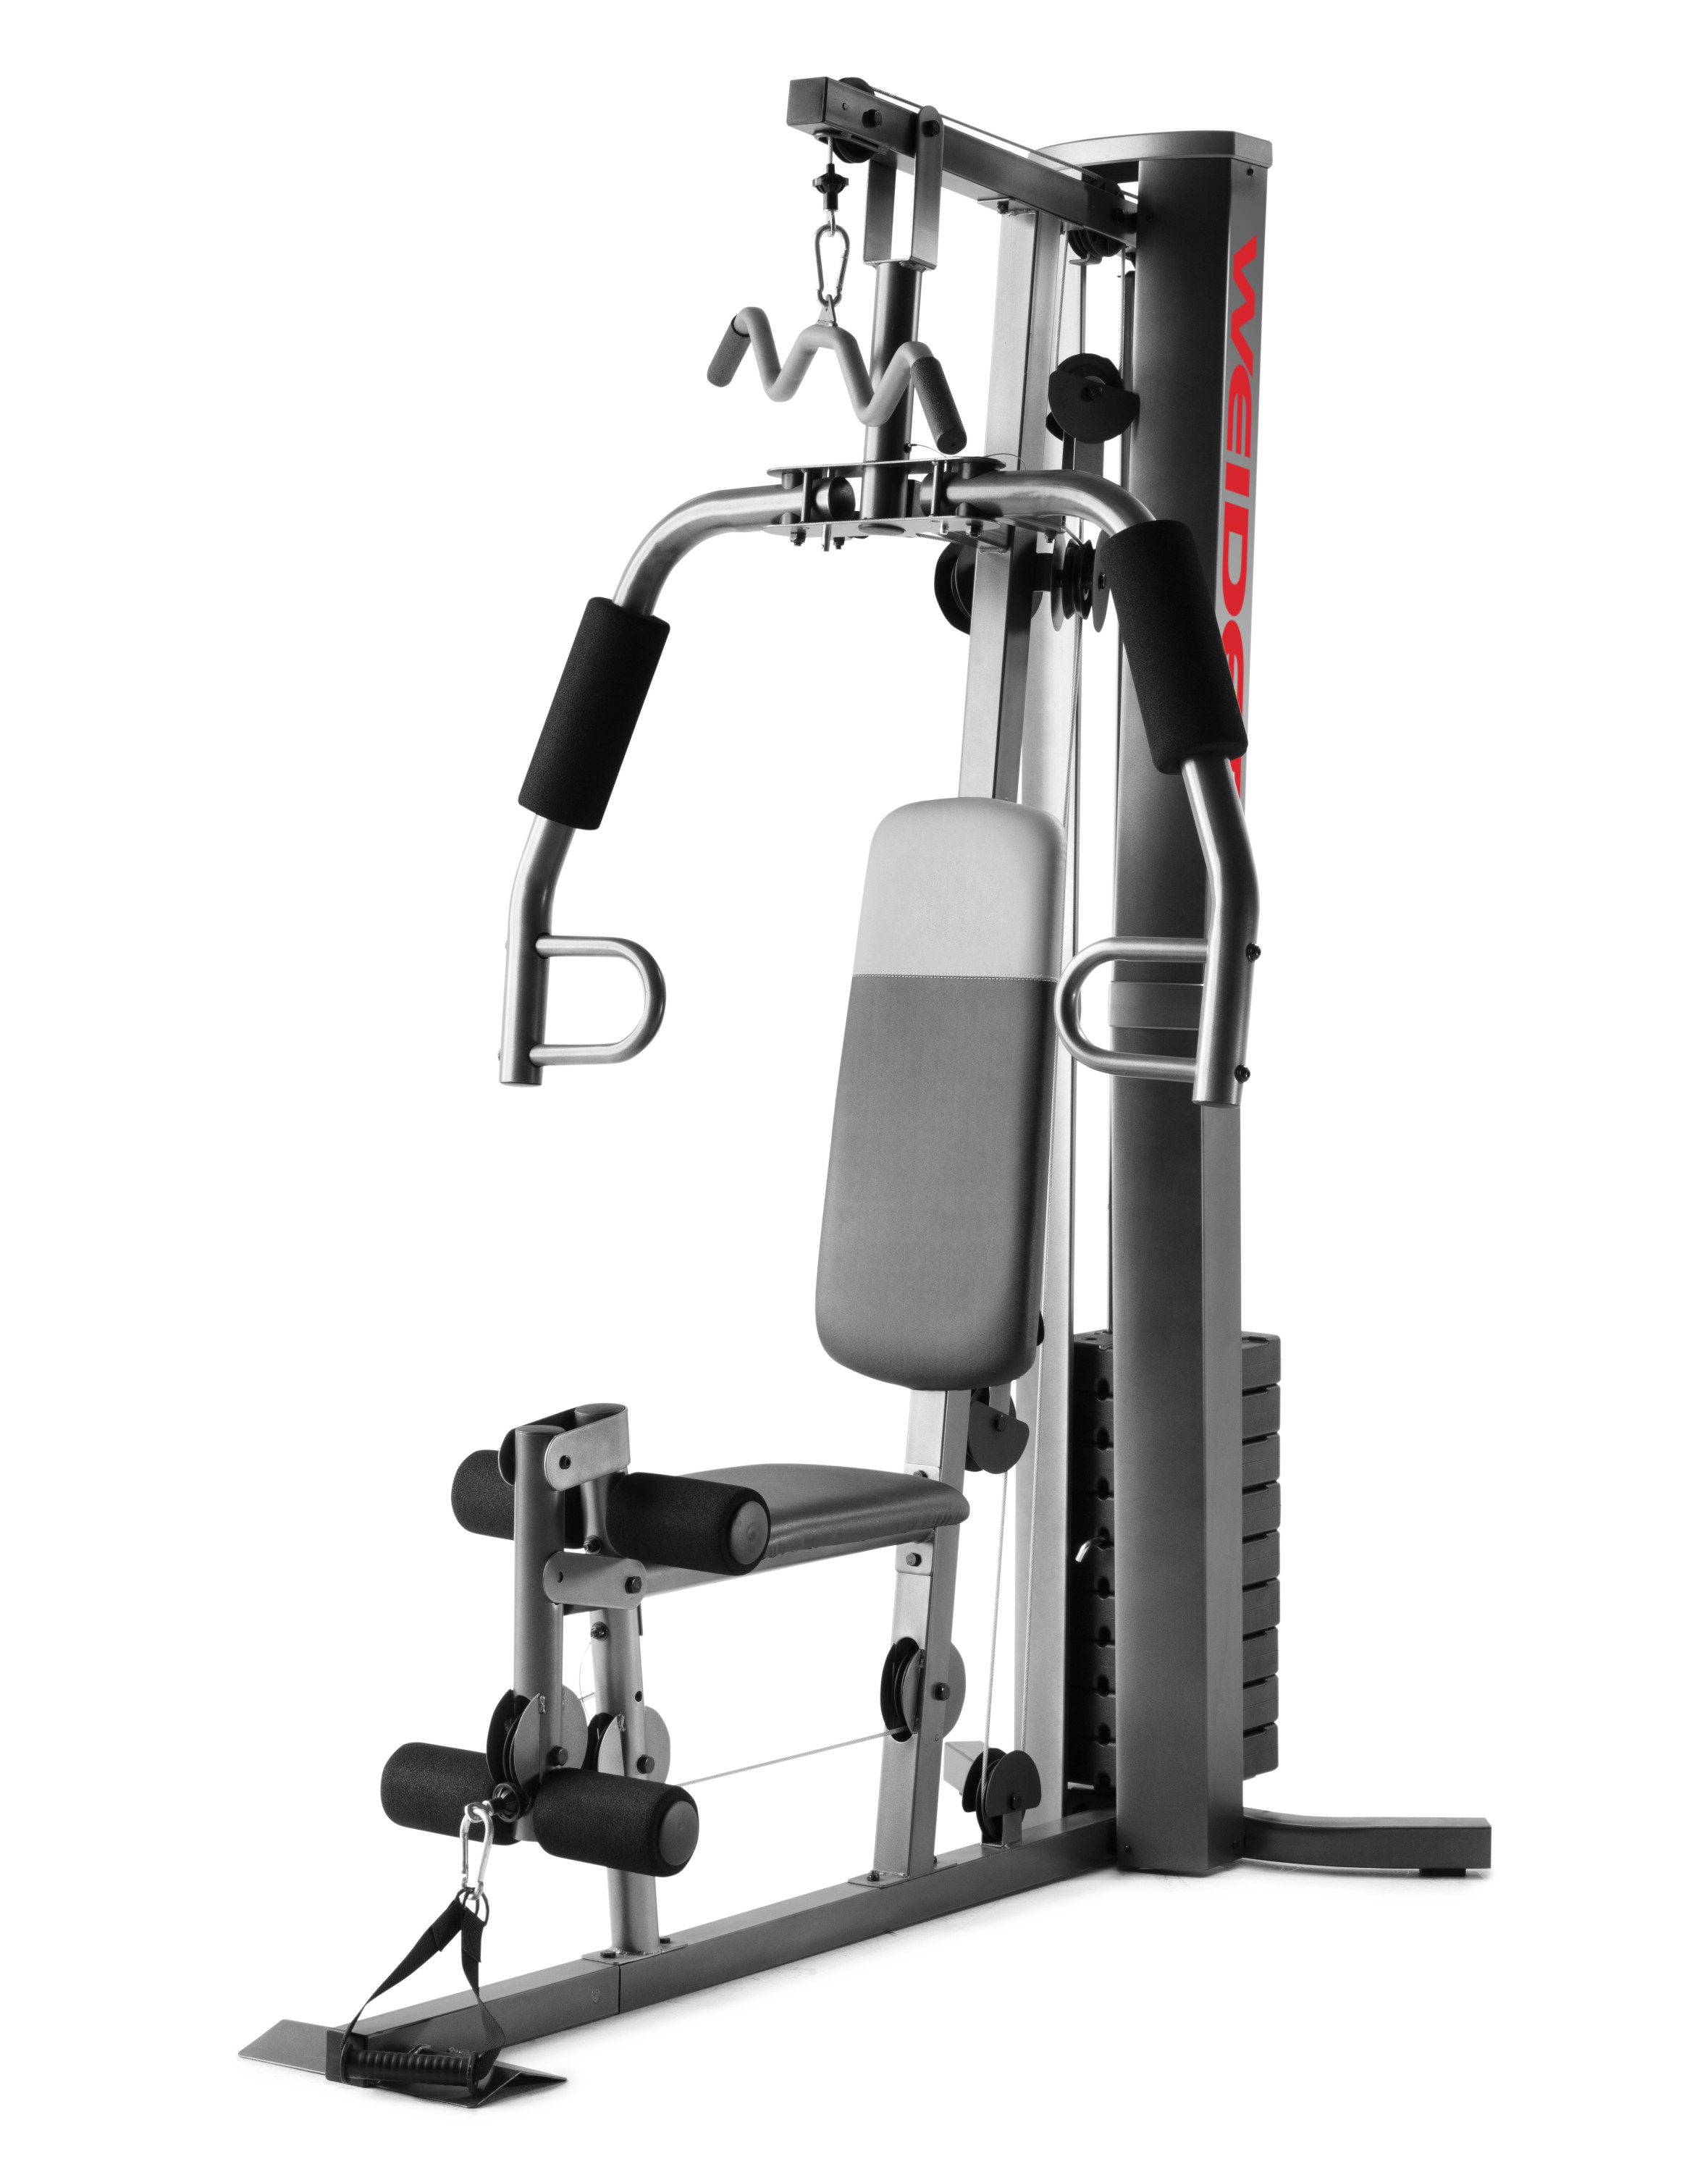 Weider XRS 50 Home Gym with High and Low Pulley System